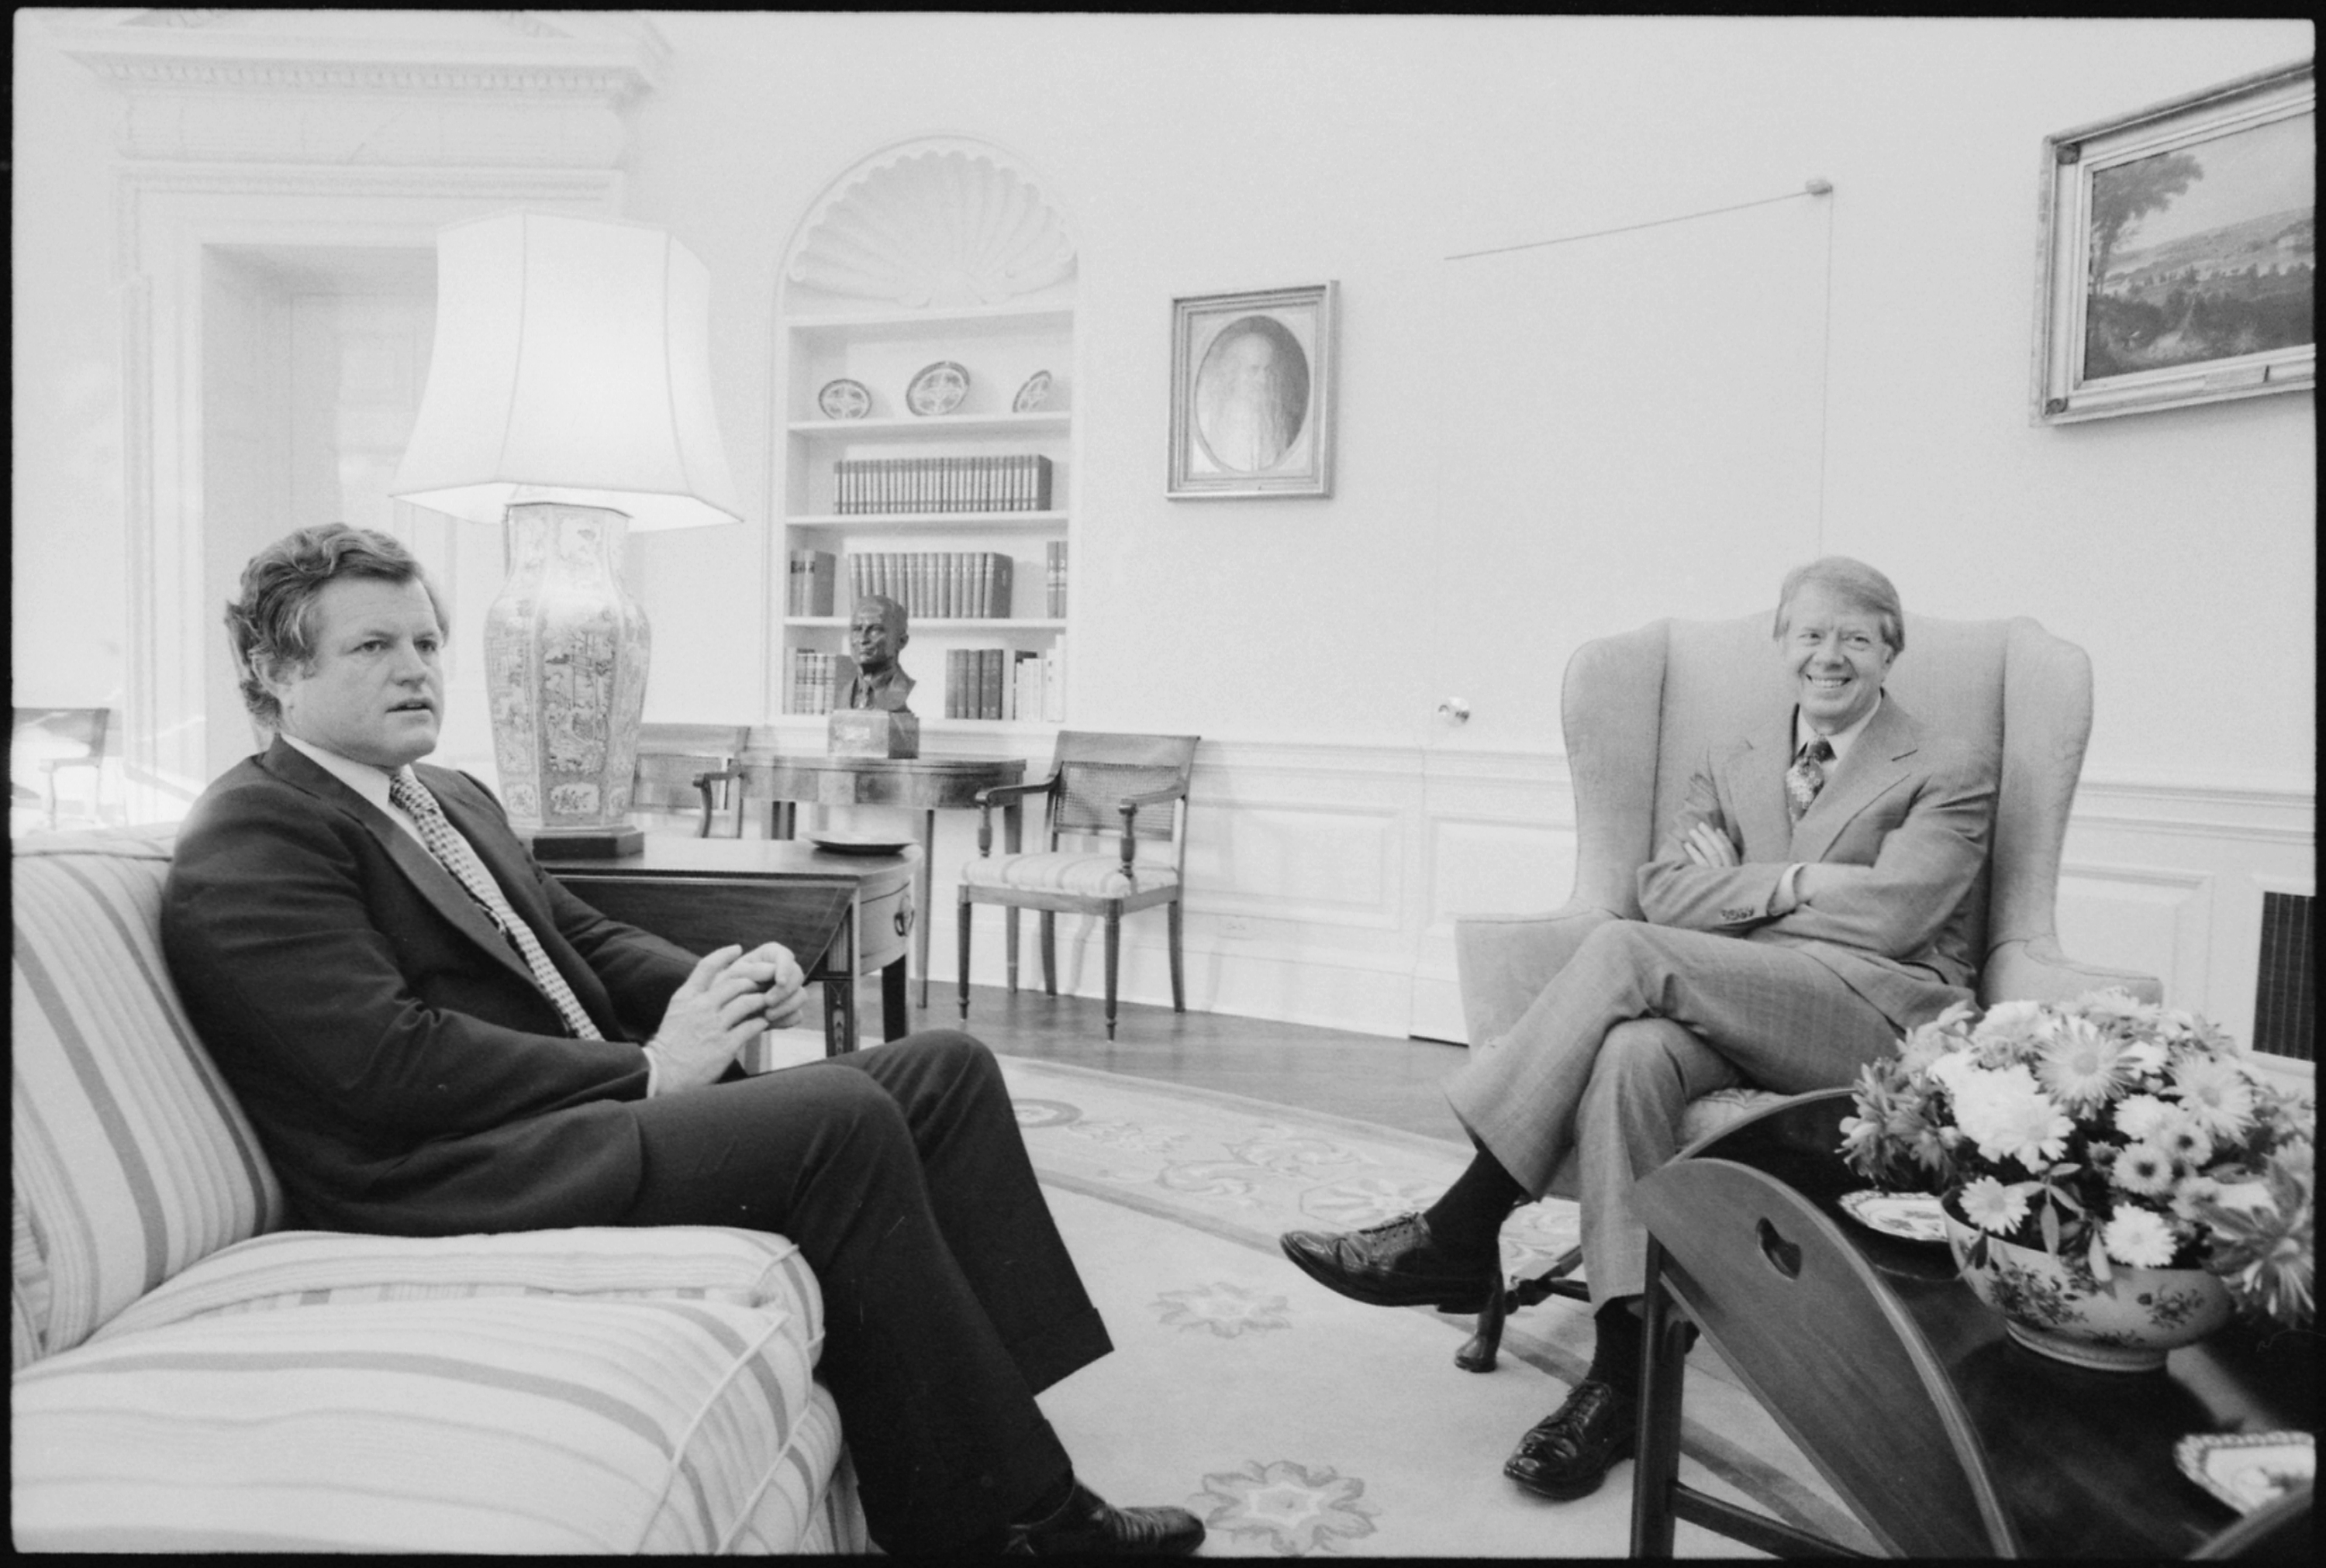 Jimmy carter oval office Study Filejimmy Carter Meets With Senator Edward Kennedy In The Oval Office Nara 176579jpg Wikimedia Commons Filejimmy Carter Meets With Senator Edward Kennedy In The Oval